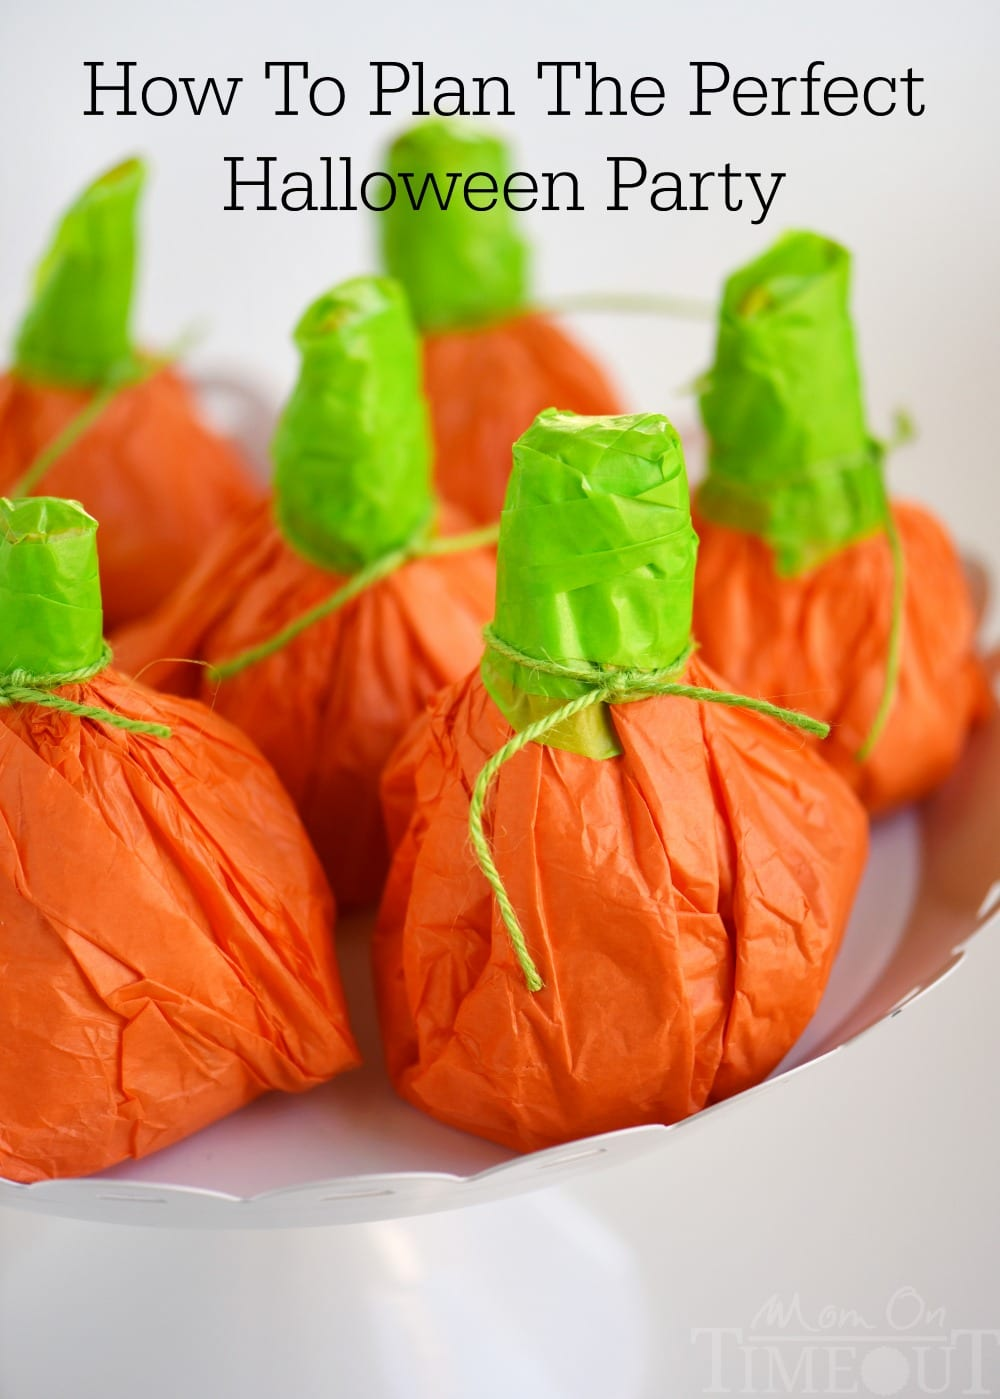 Lots of great tips on How To Plan the Perfect Halloween Party! DIY decorations, Halloween eats and treats, and party favors too! All you'll need for the perfect Halloween party! // Mom On Timeout